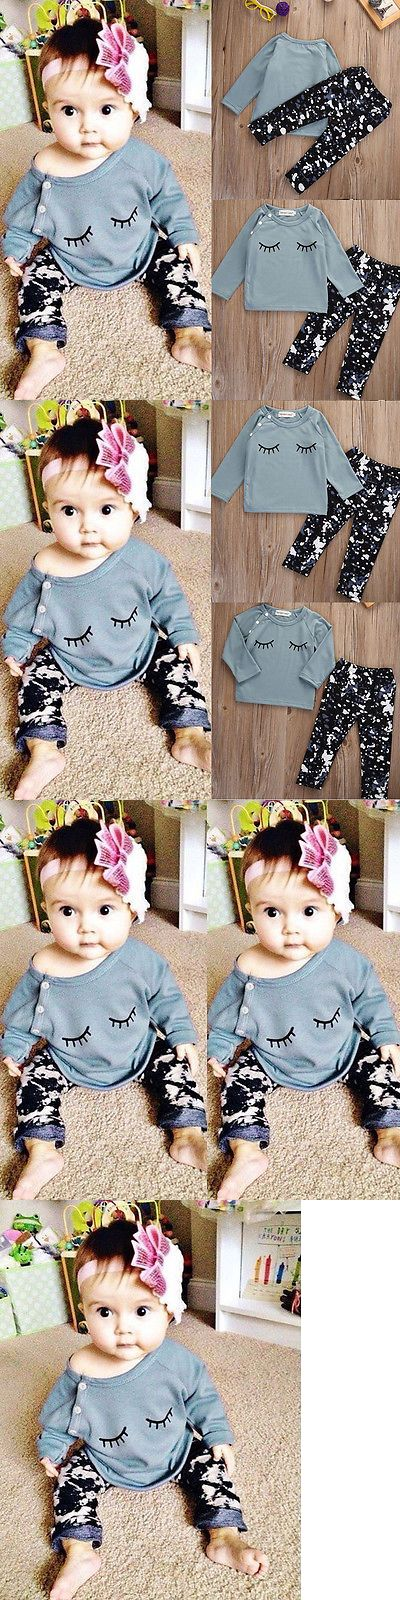 Baby Girls Clothing: Newborn Infinfant Baby Girls Boy Clothes T-Shirt +Leggings Pants Outfit Set Bao BUY IT NOW ONLY: $9.99